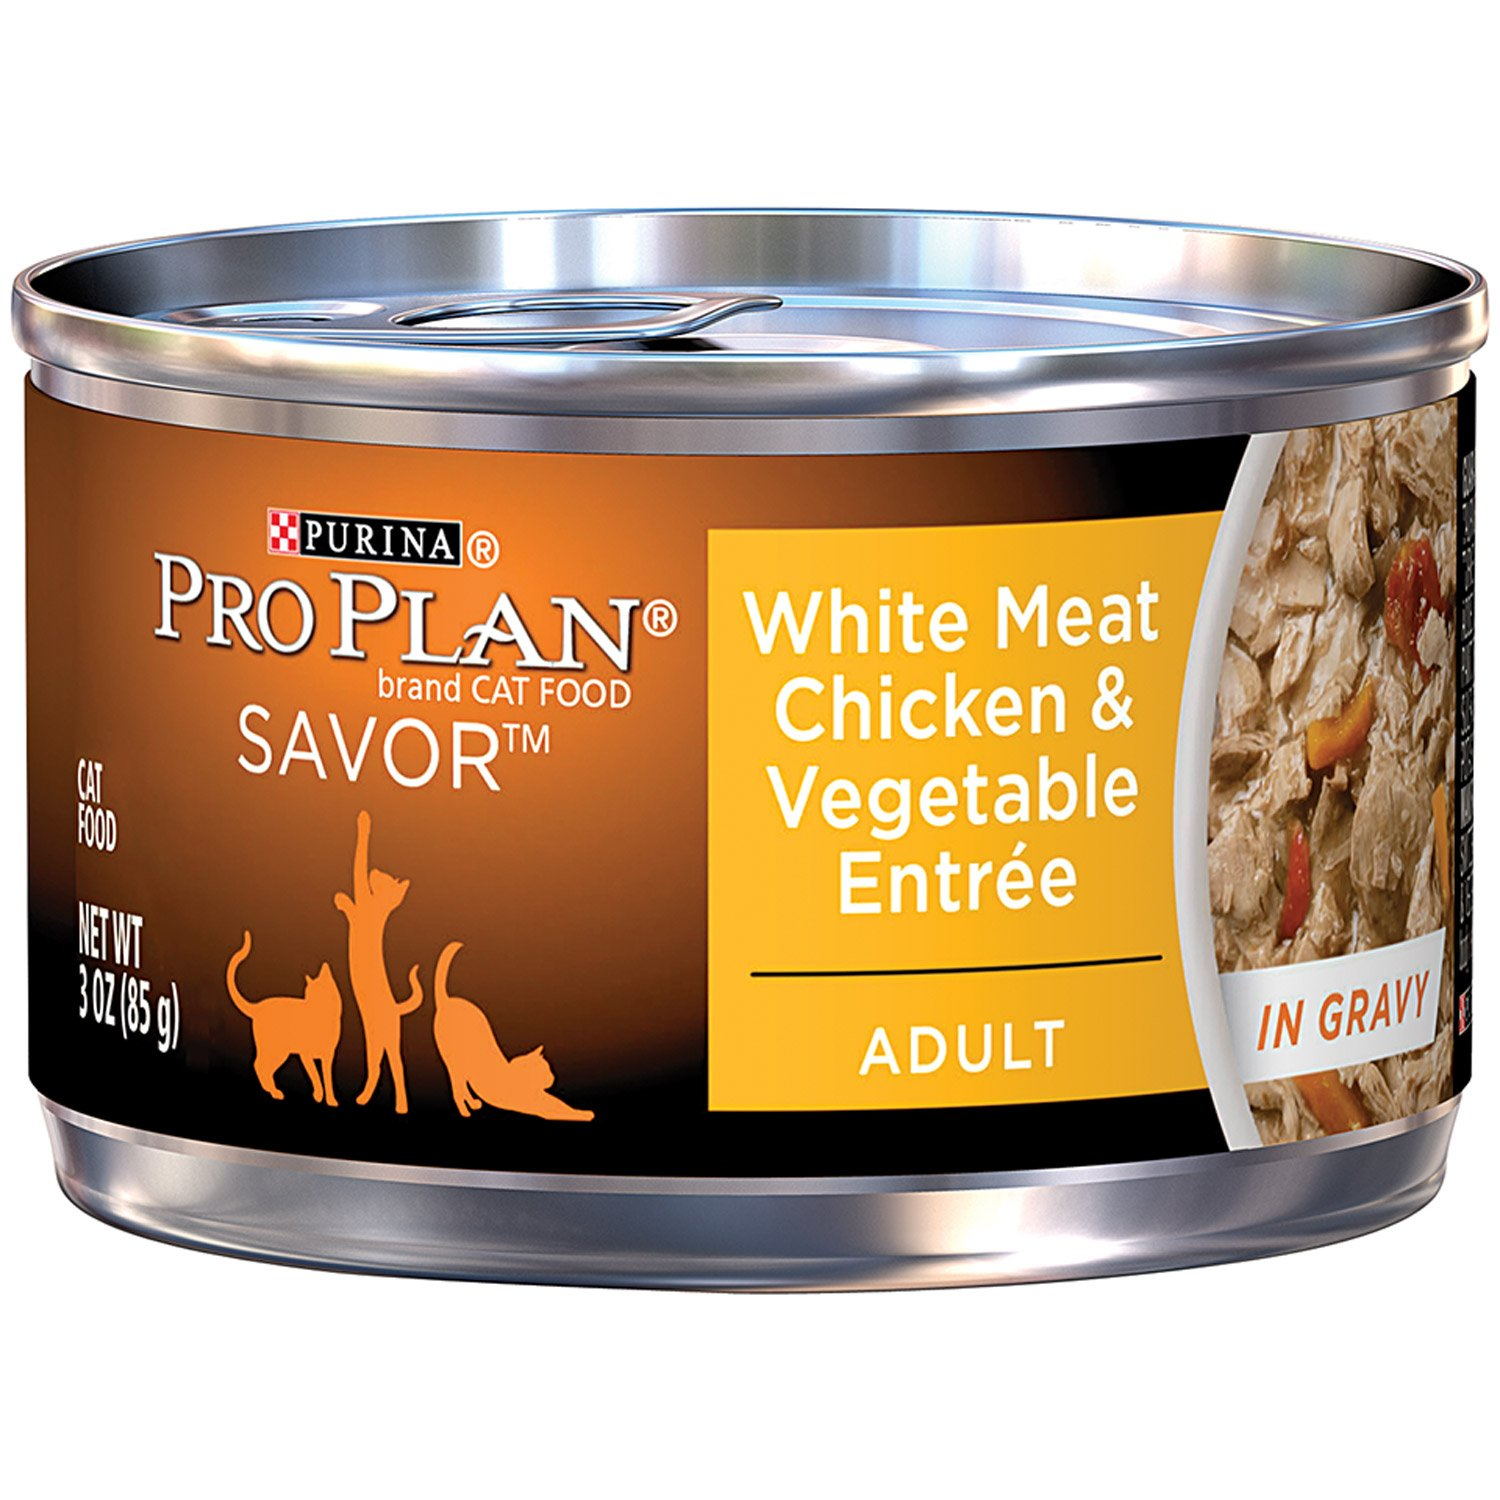 Pro Plan Savor White Meat Chicken & Vegetable Adult Canned Cat Food in Gravy | Petco at Petco in Braselton, GA | Tuggl